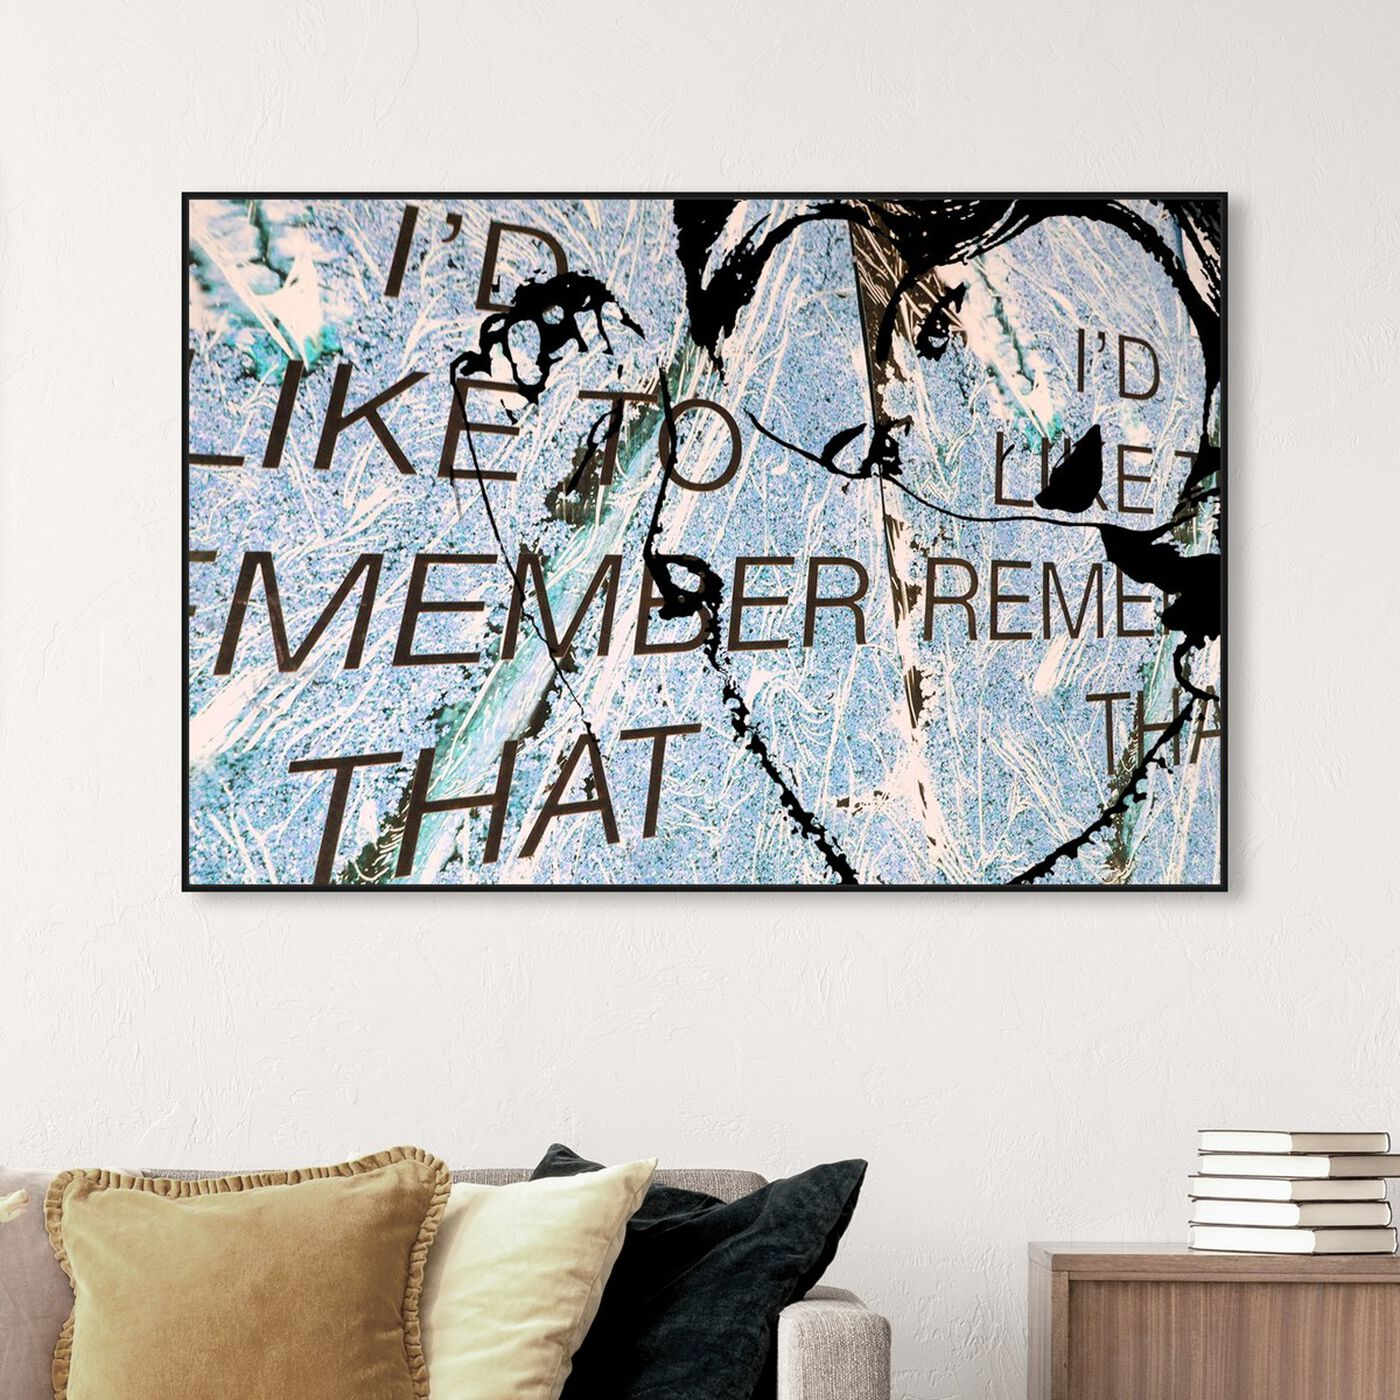 Hanging view of I'd Like To Remember featuring typography and quotes and love quotes and sayings art.